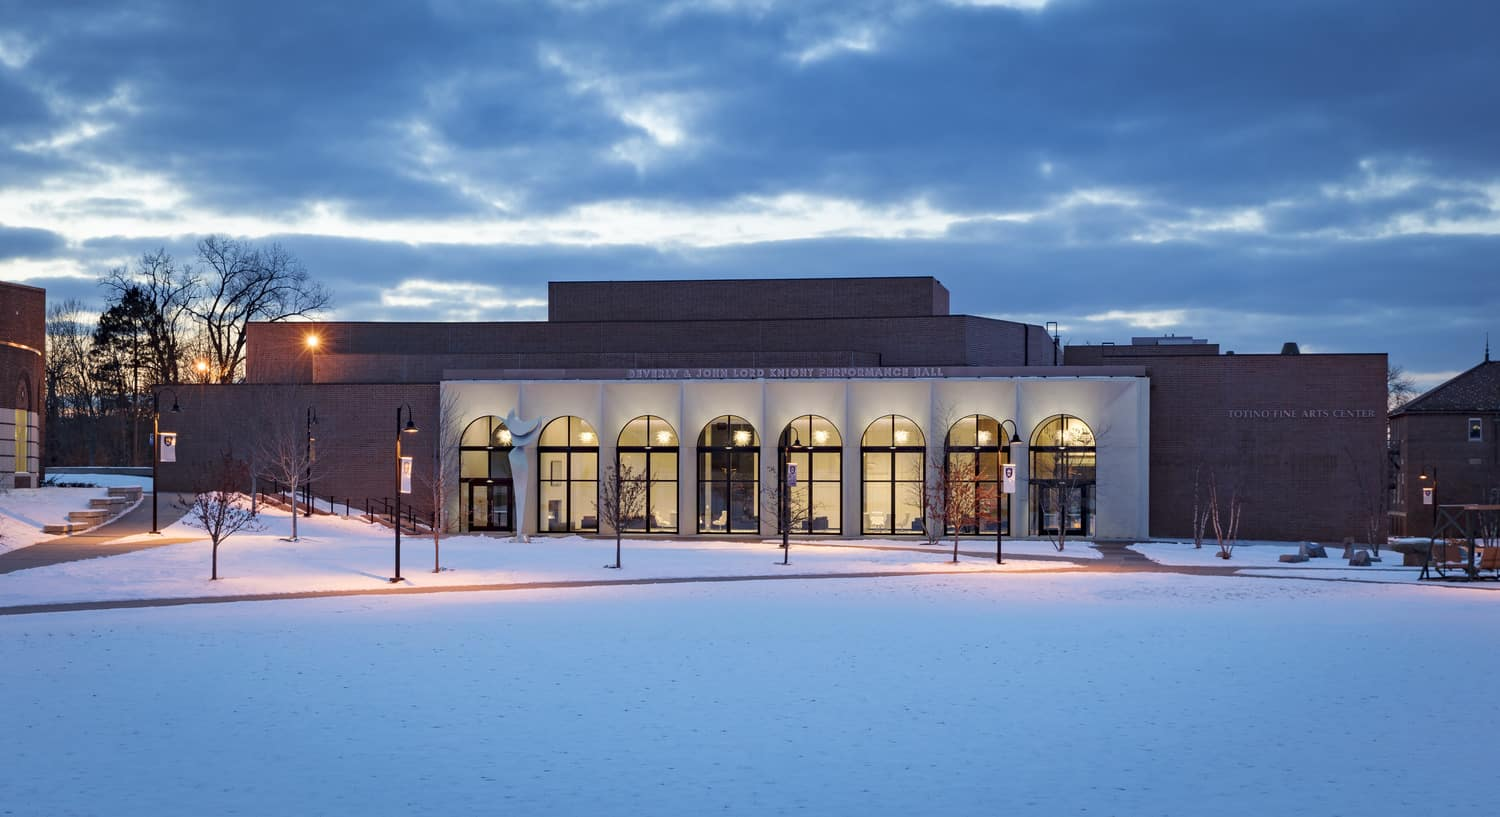 University of Northwestern Lord Knight Performance Hall